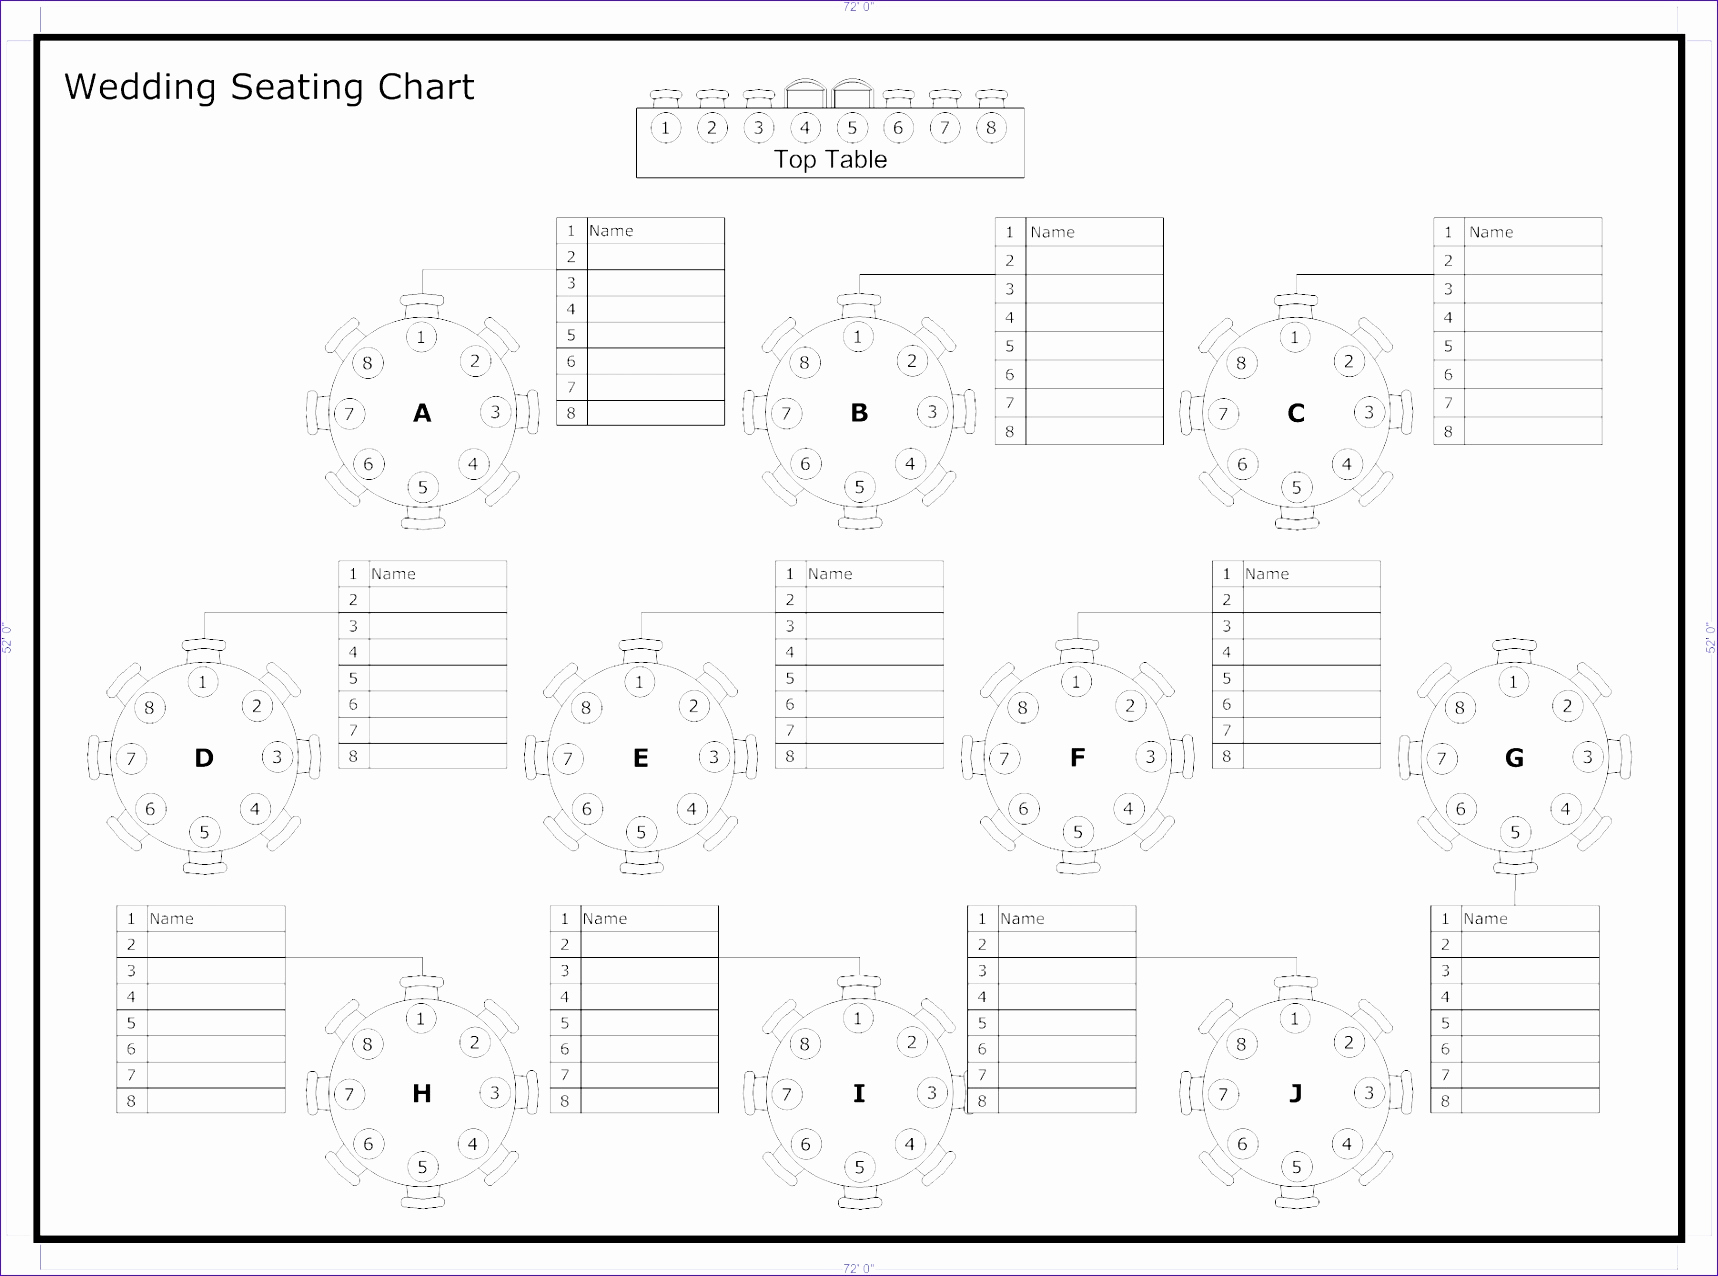 Wedding Seating Chart Template Excel Lovely 6 Wedding Seating Chart Template Excel Exceltemplates